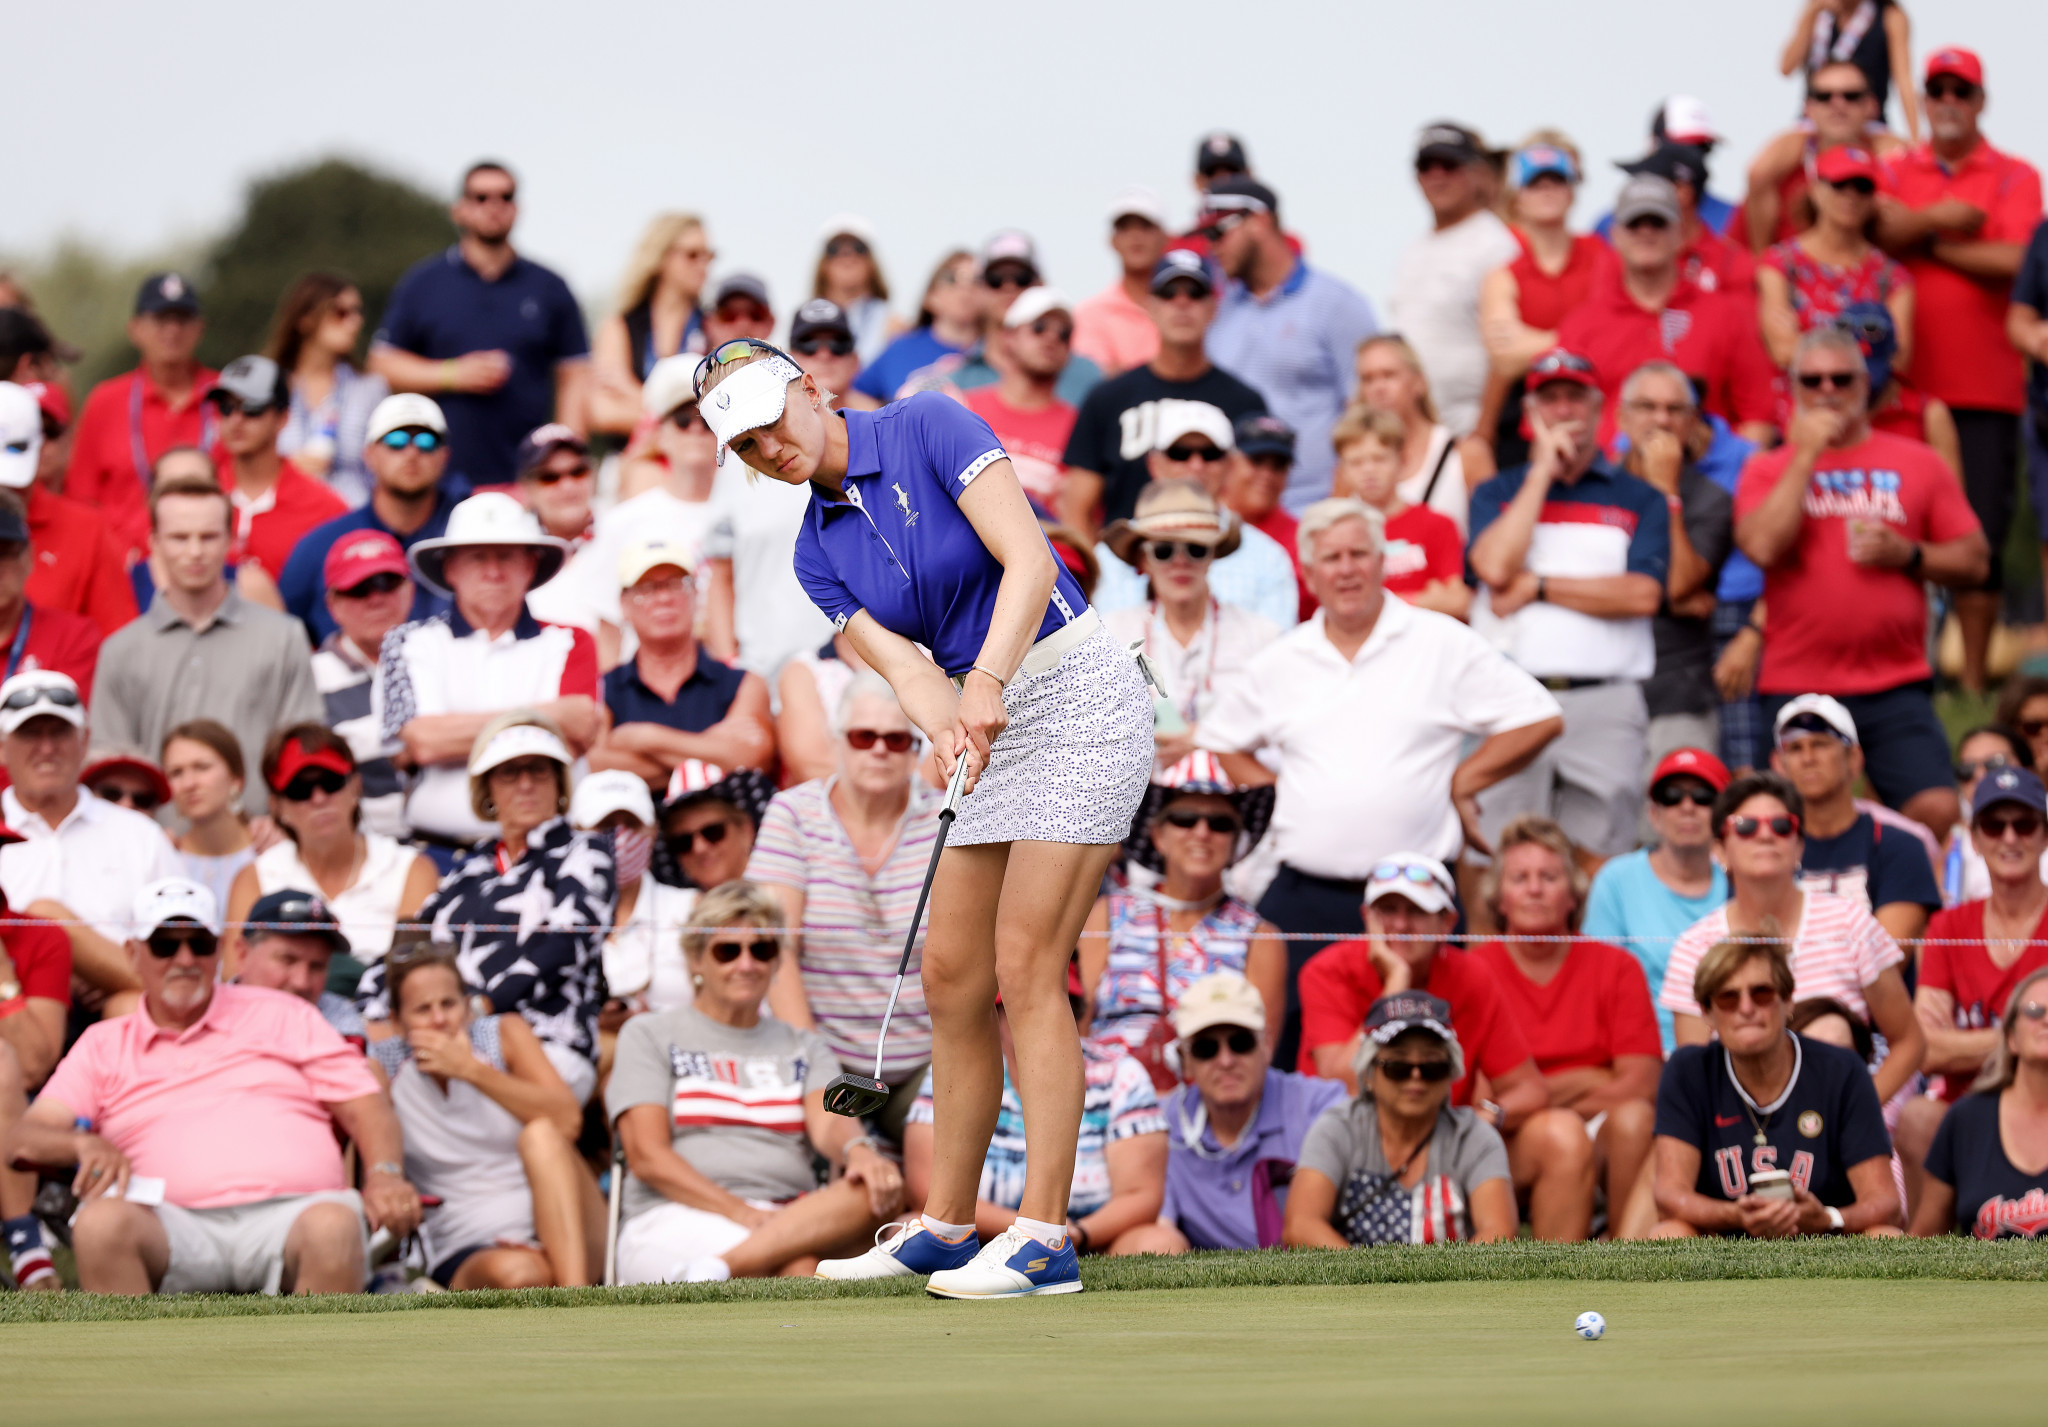 Europe lead by three points after first day of Solheim Cup defence